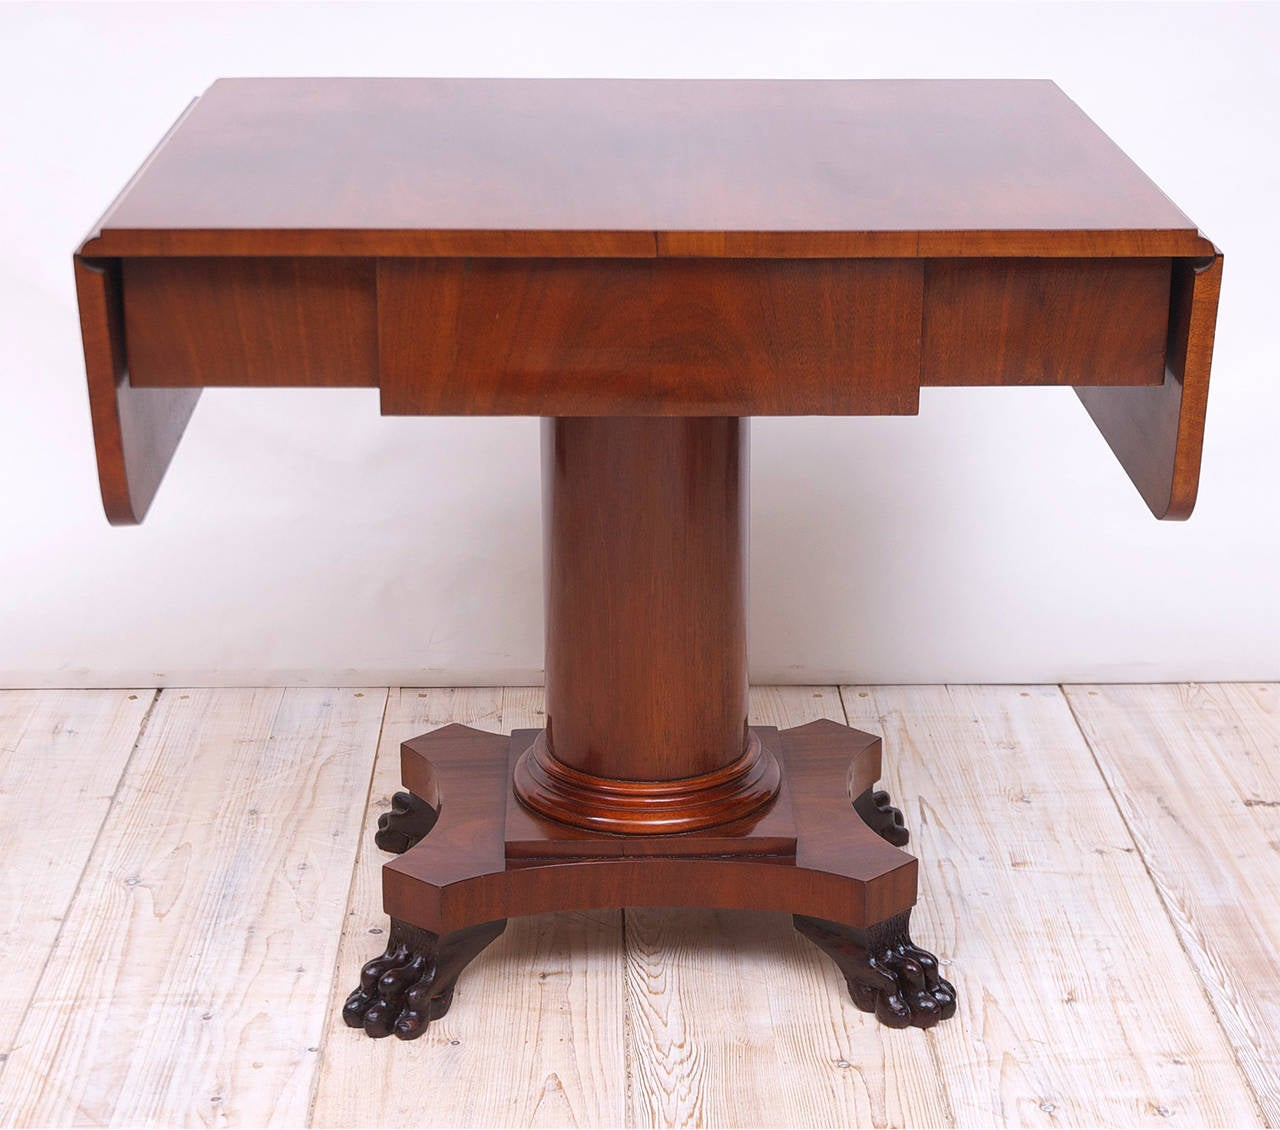 A handsome Biedermeier sofa table or writing desk in Cuban mahogany with one drawer and two drop leaves on cylinder column resting on quatre-form base with carved lions' paw feet, Sweden, circa 1840-1850.